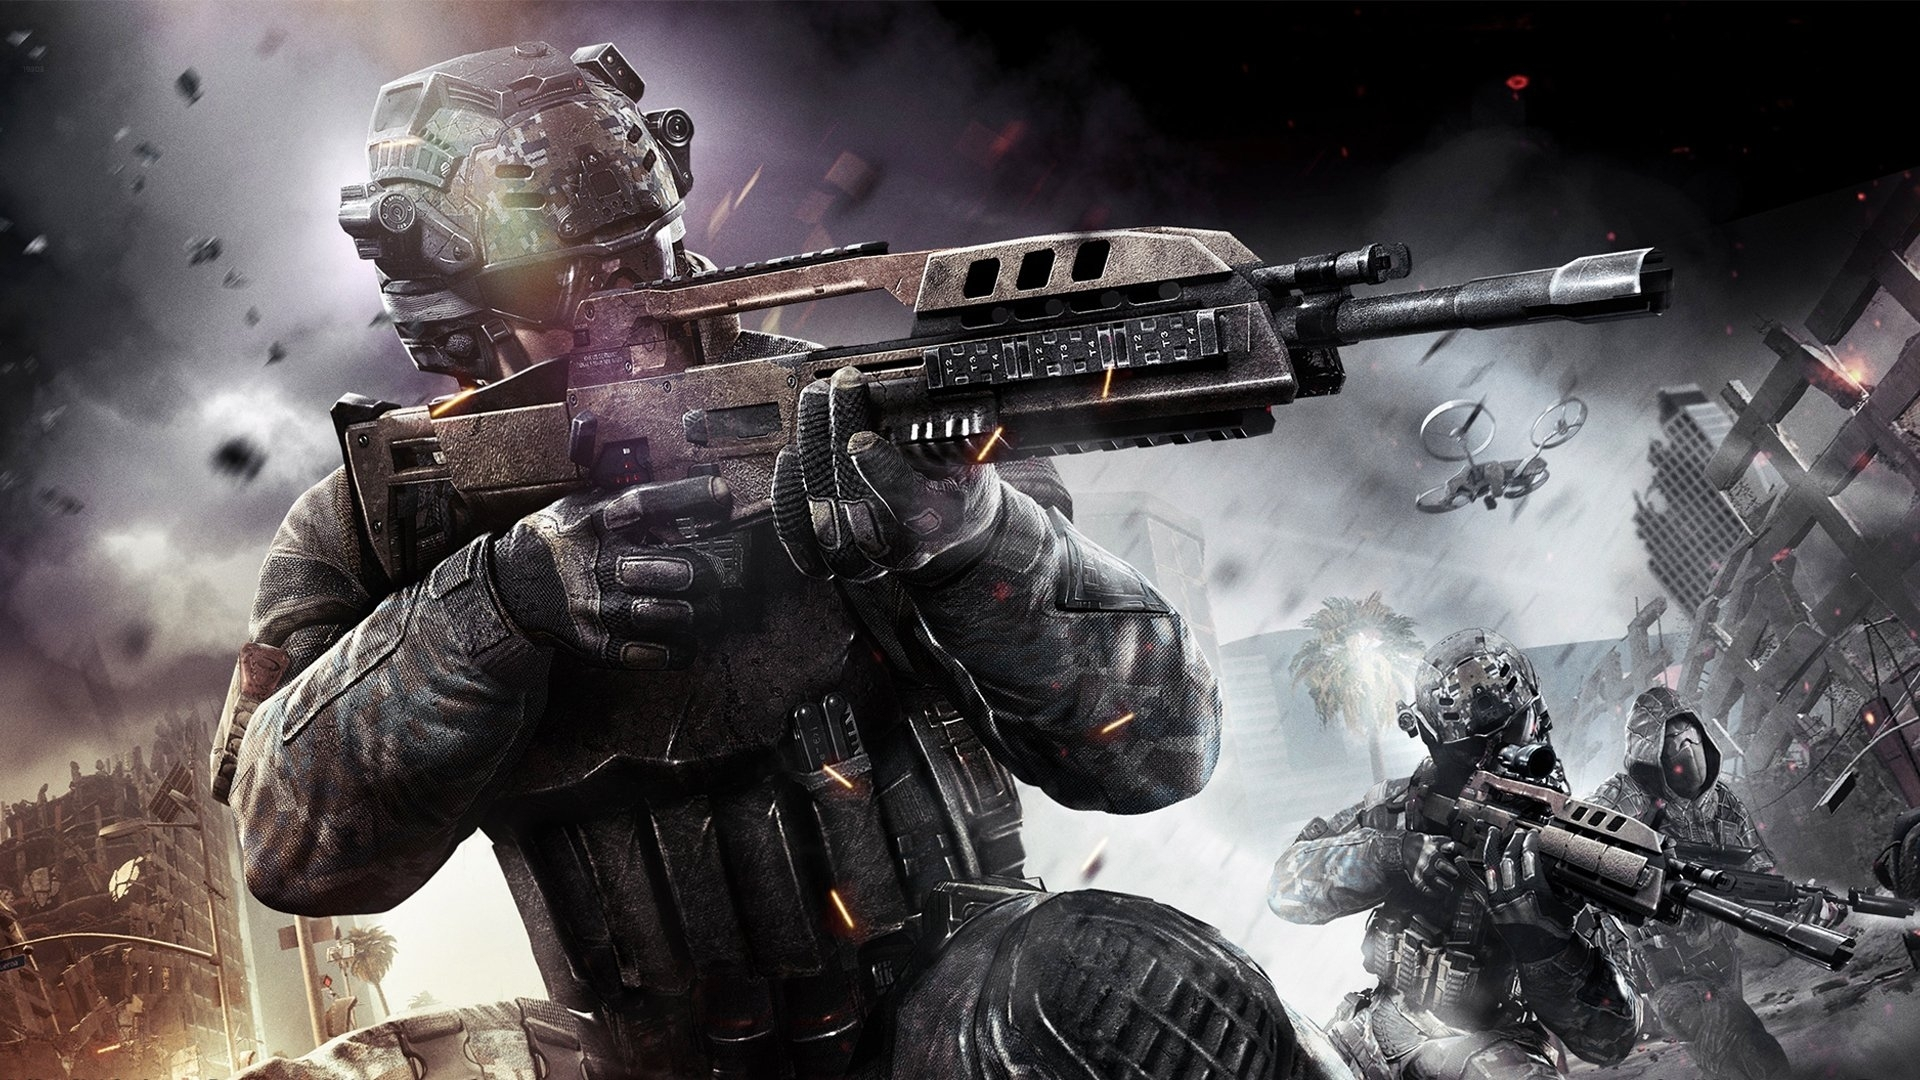 107 call of duty hd wallpapers | background images - wallpaper abyss